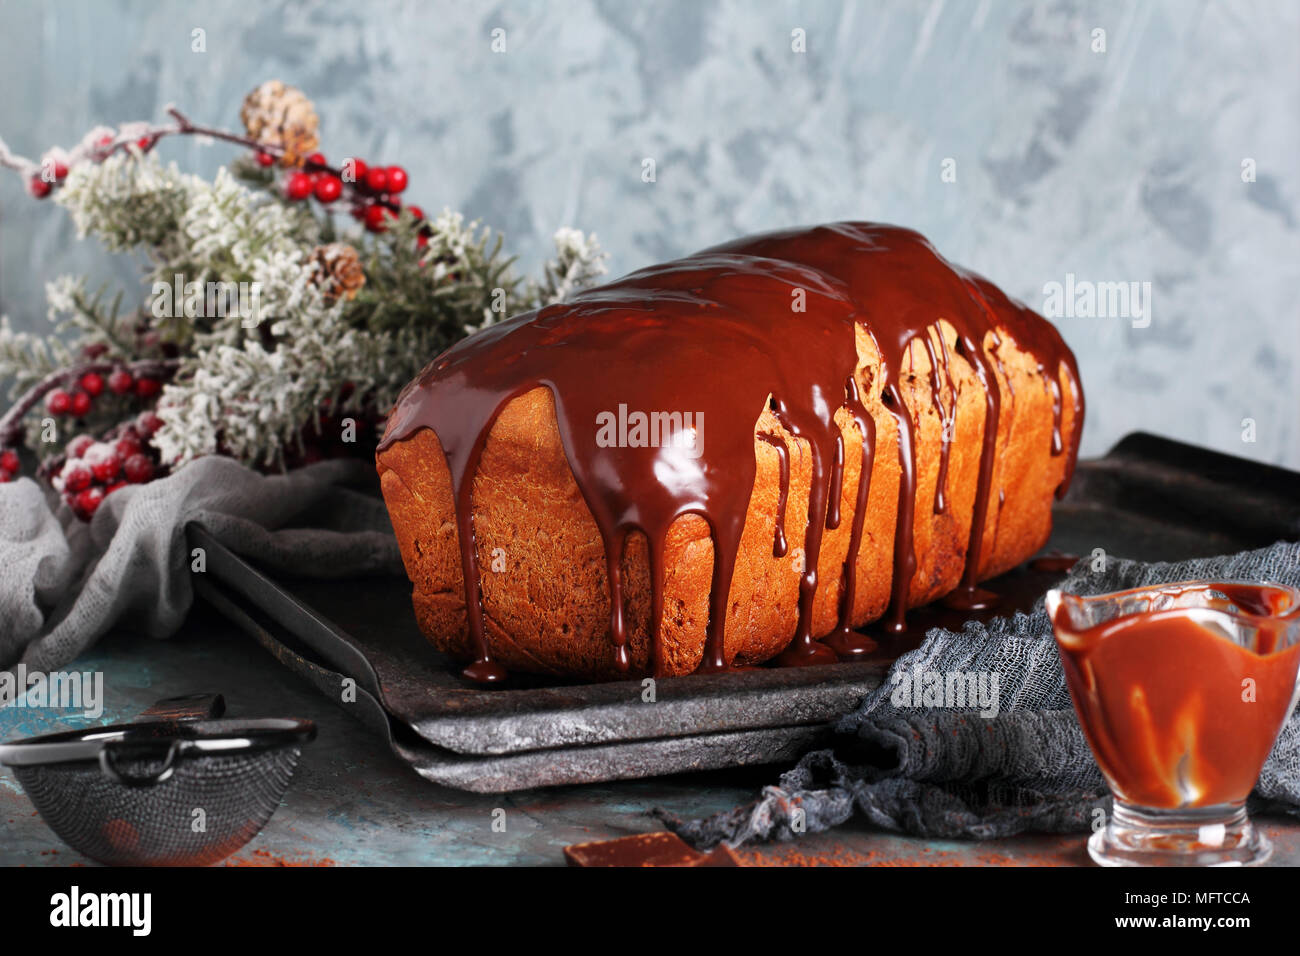 homemade chocolate bread with melted chocolate, in New Year's decorations - Stock Image